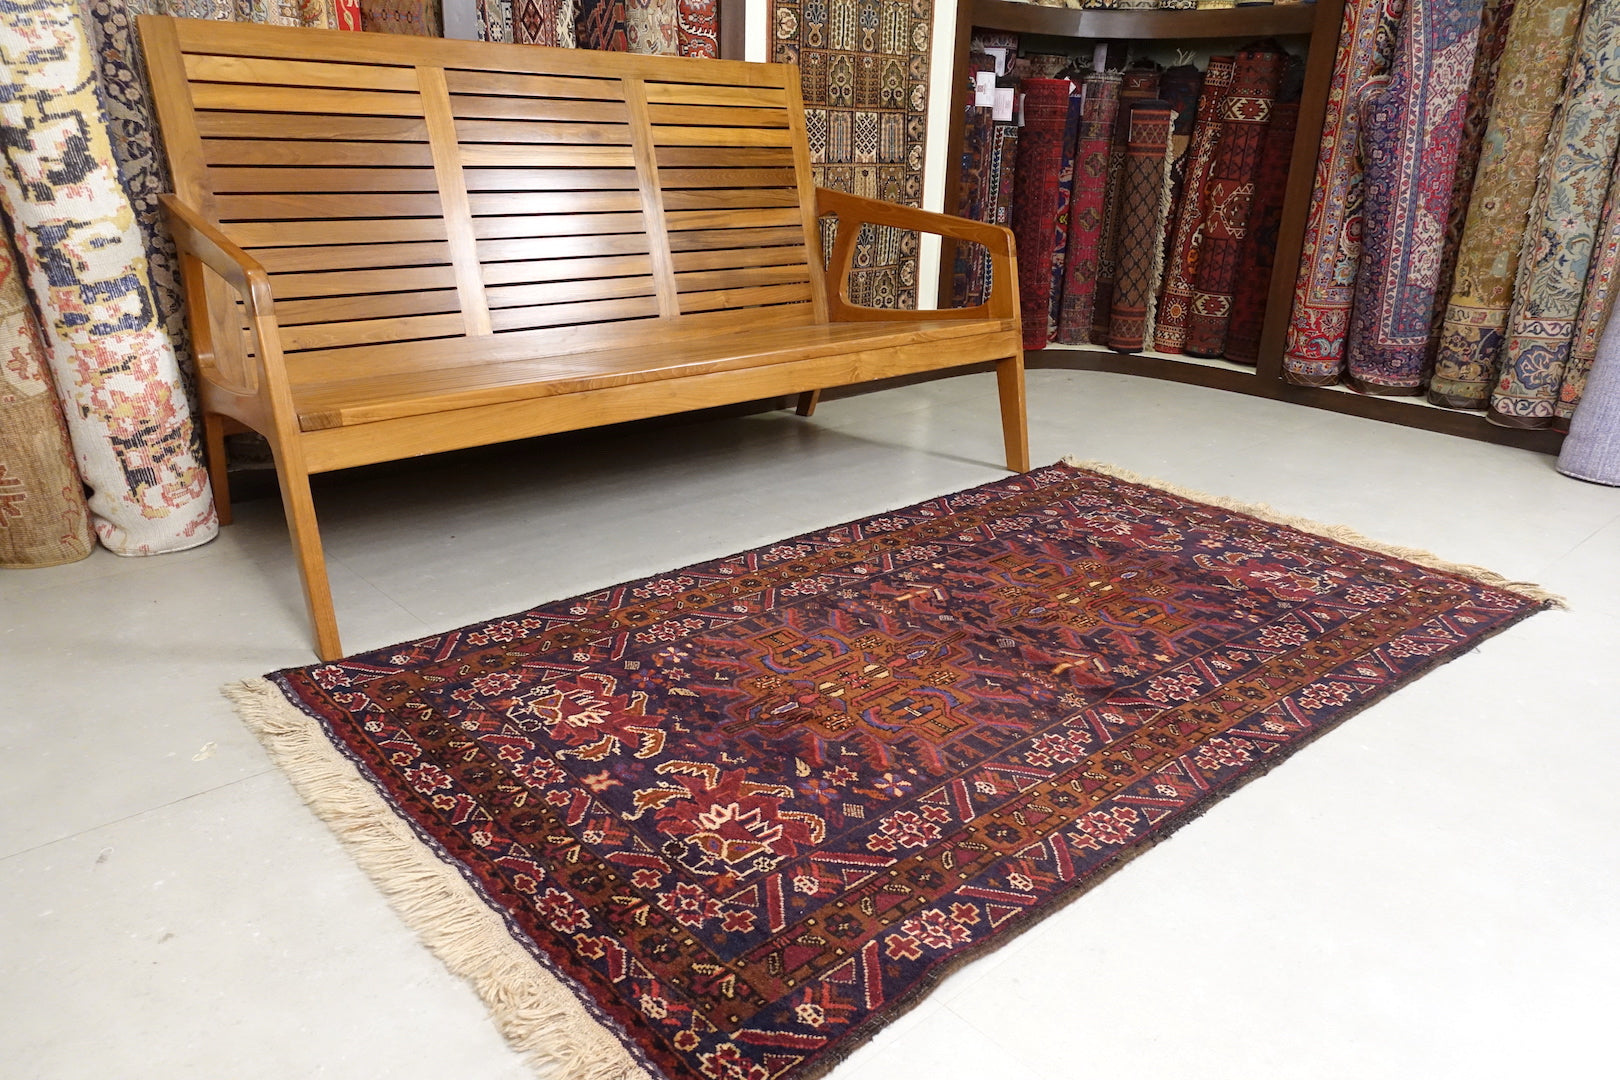 It is a 3.5 feet by 6 feet Afghan wool rug. The colours used are dark blue, brick red and rust.